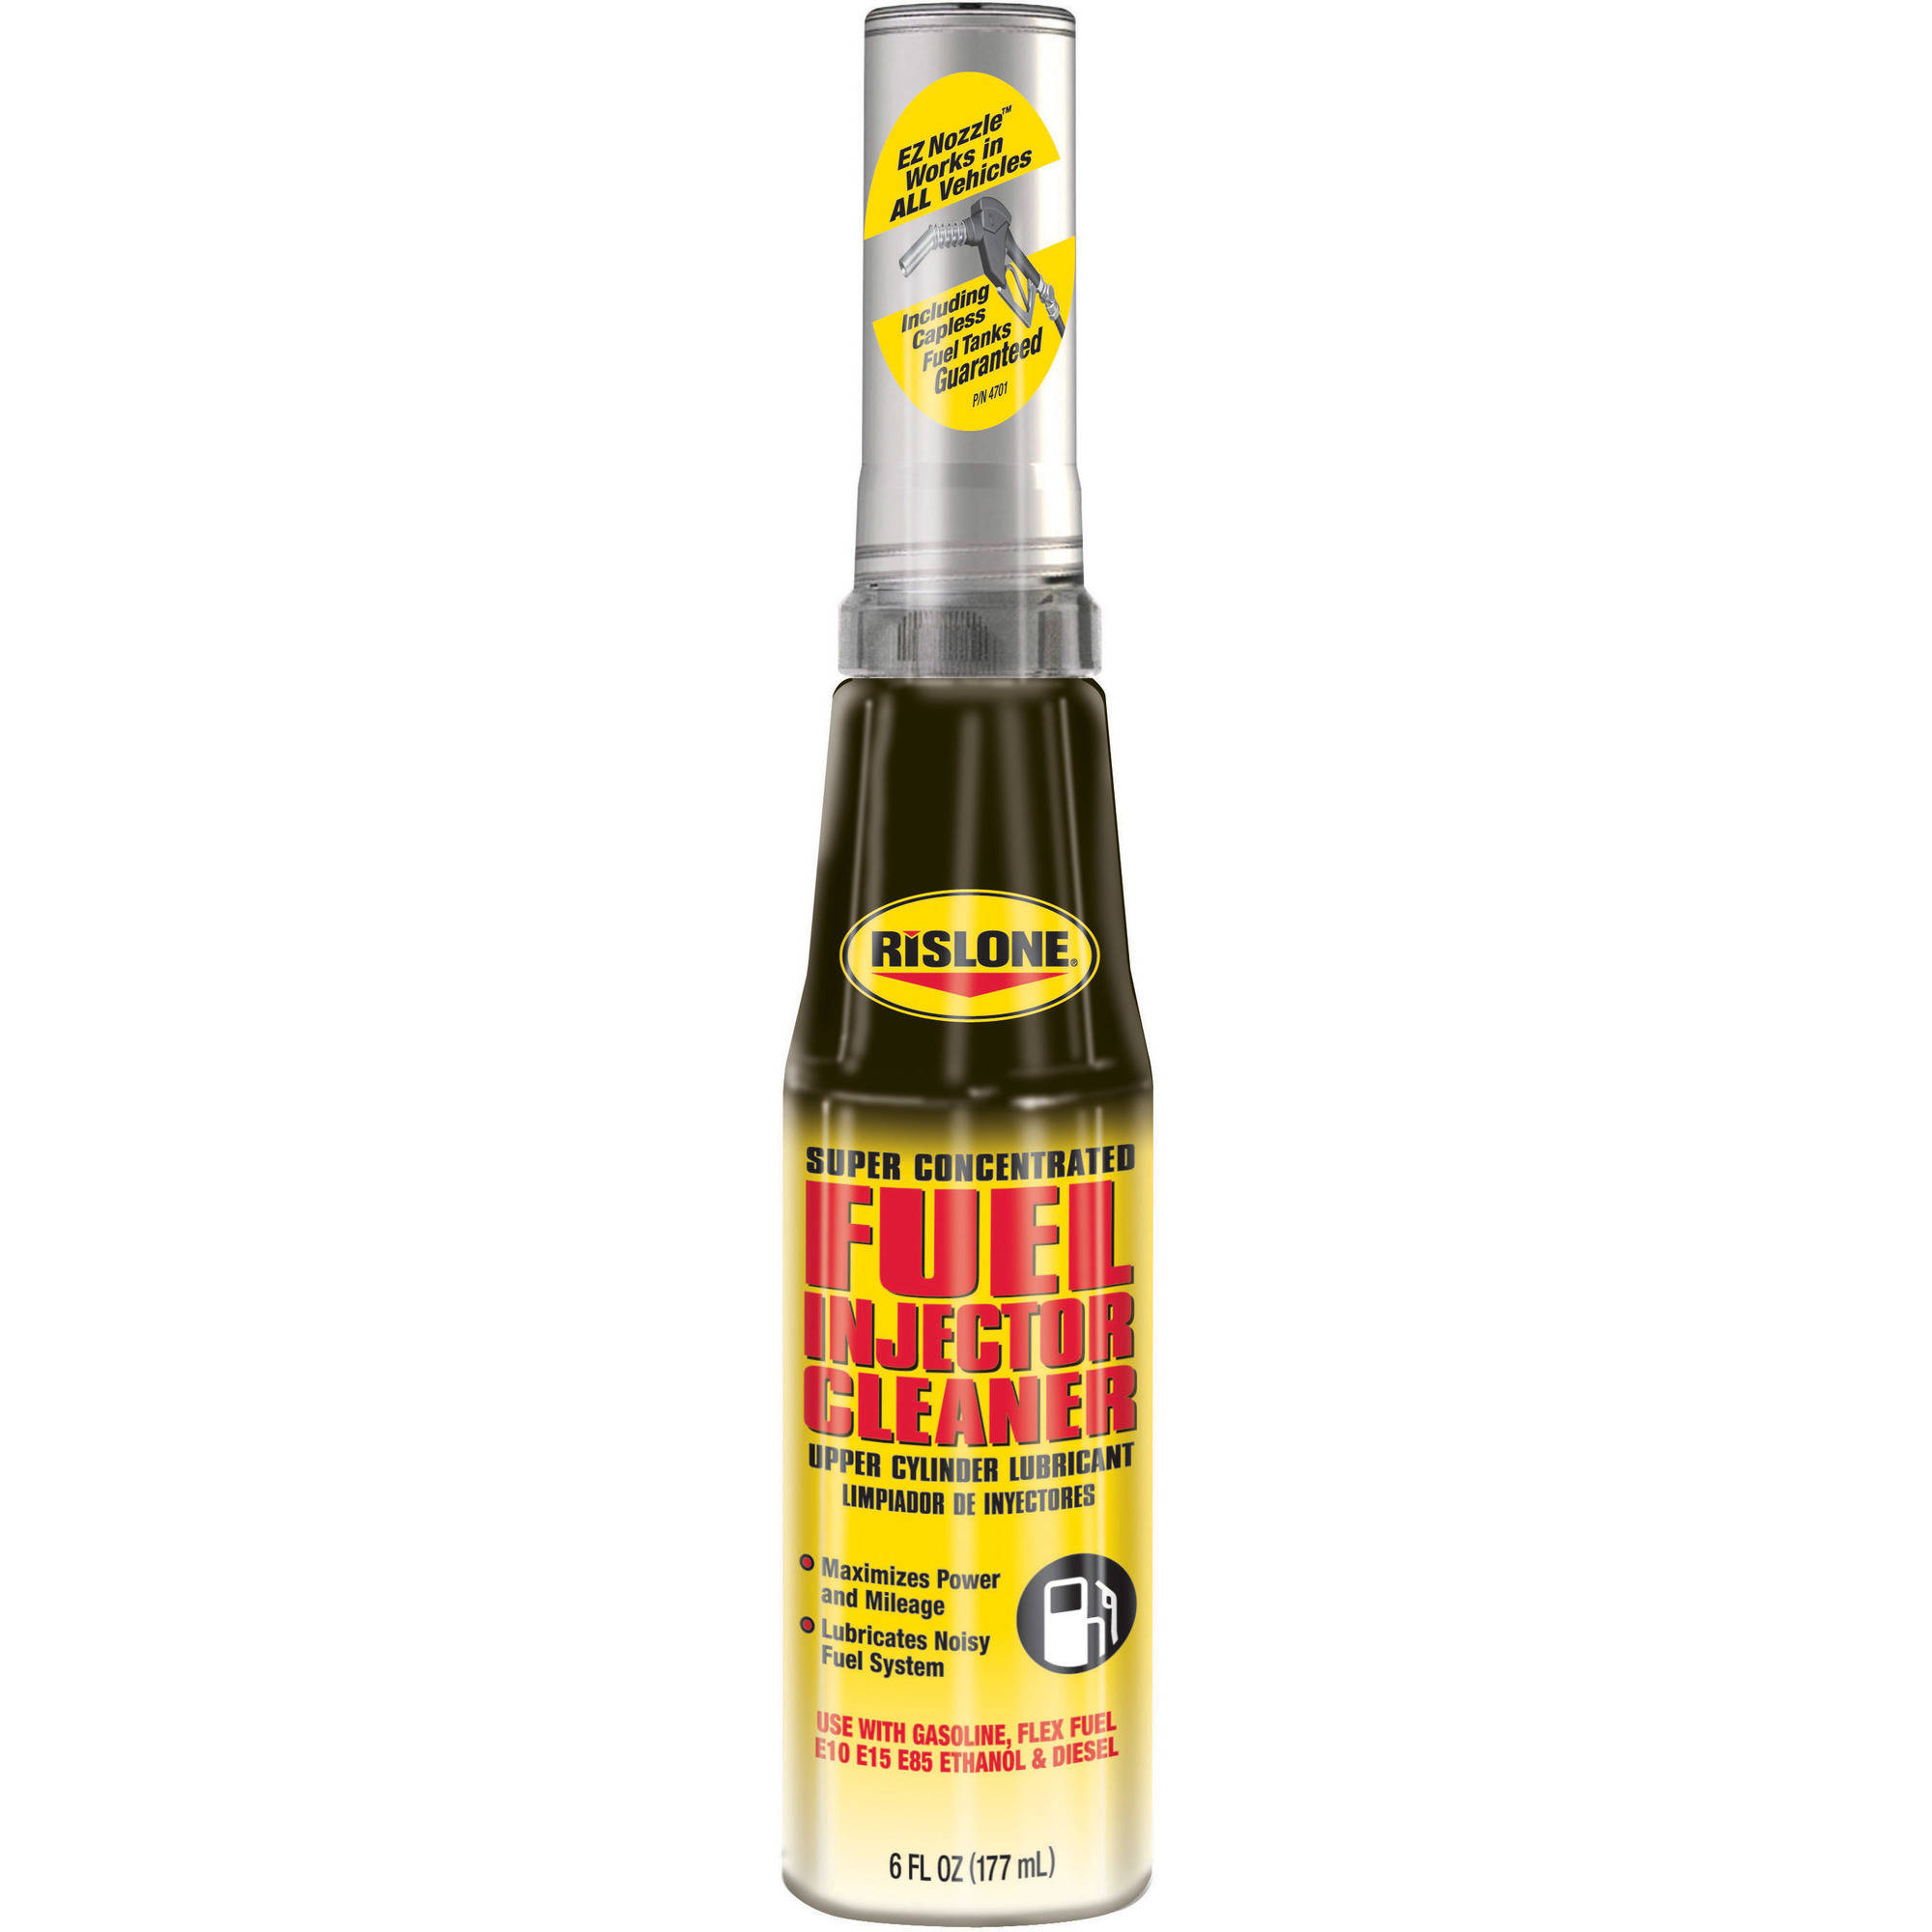 Rislone Fuel Injector Cleaner UCL by Bar's Products